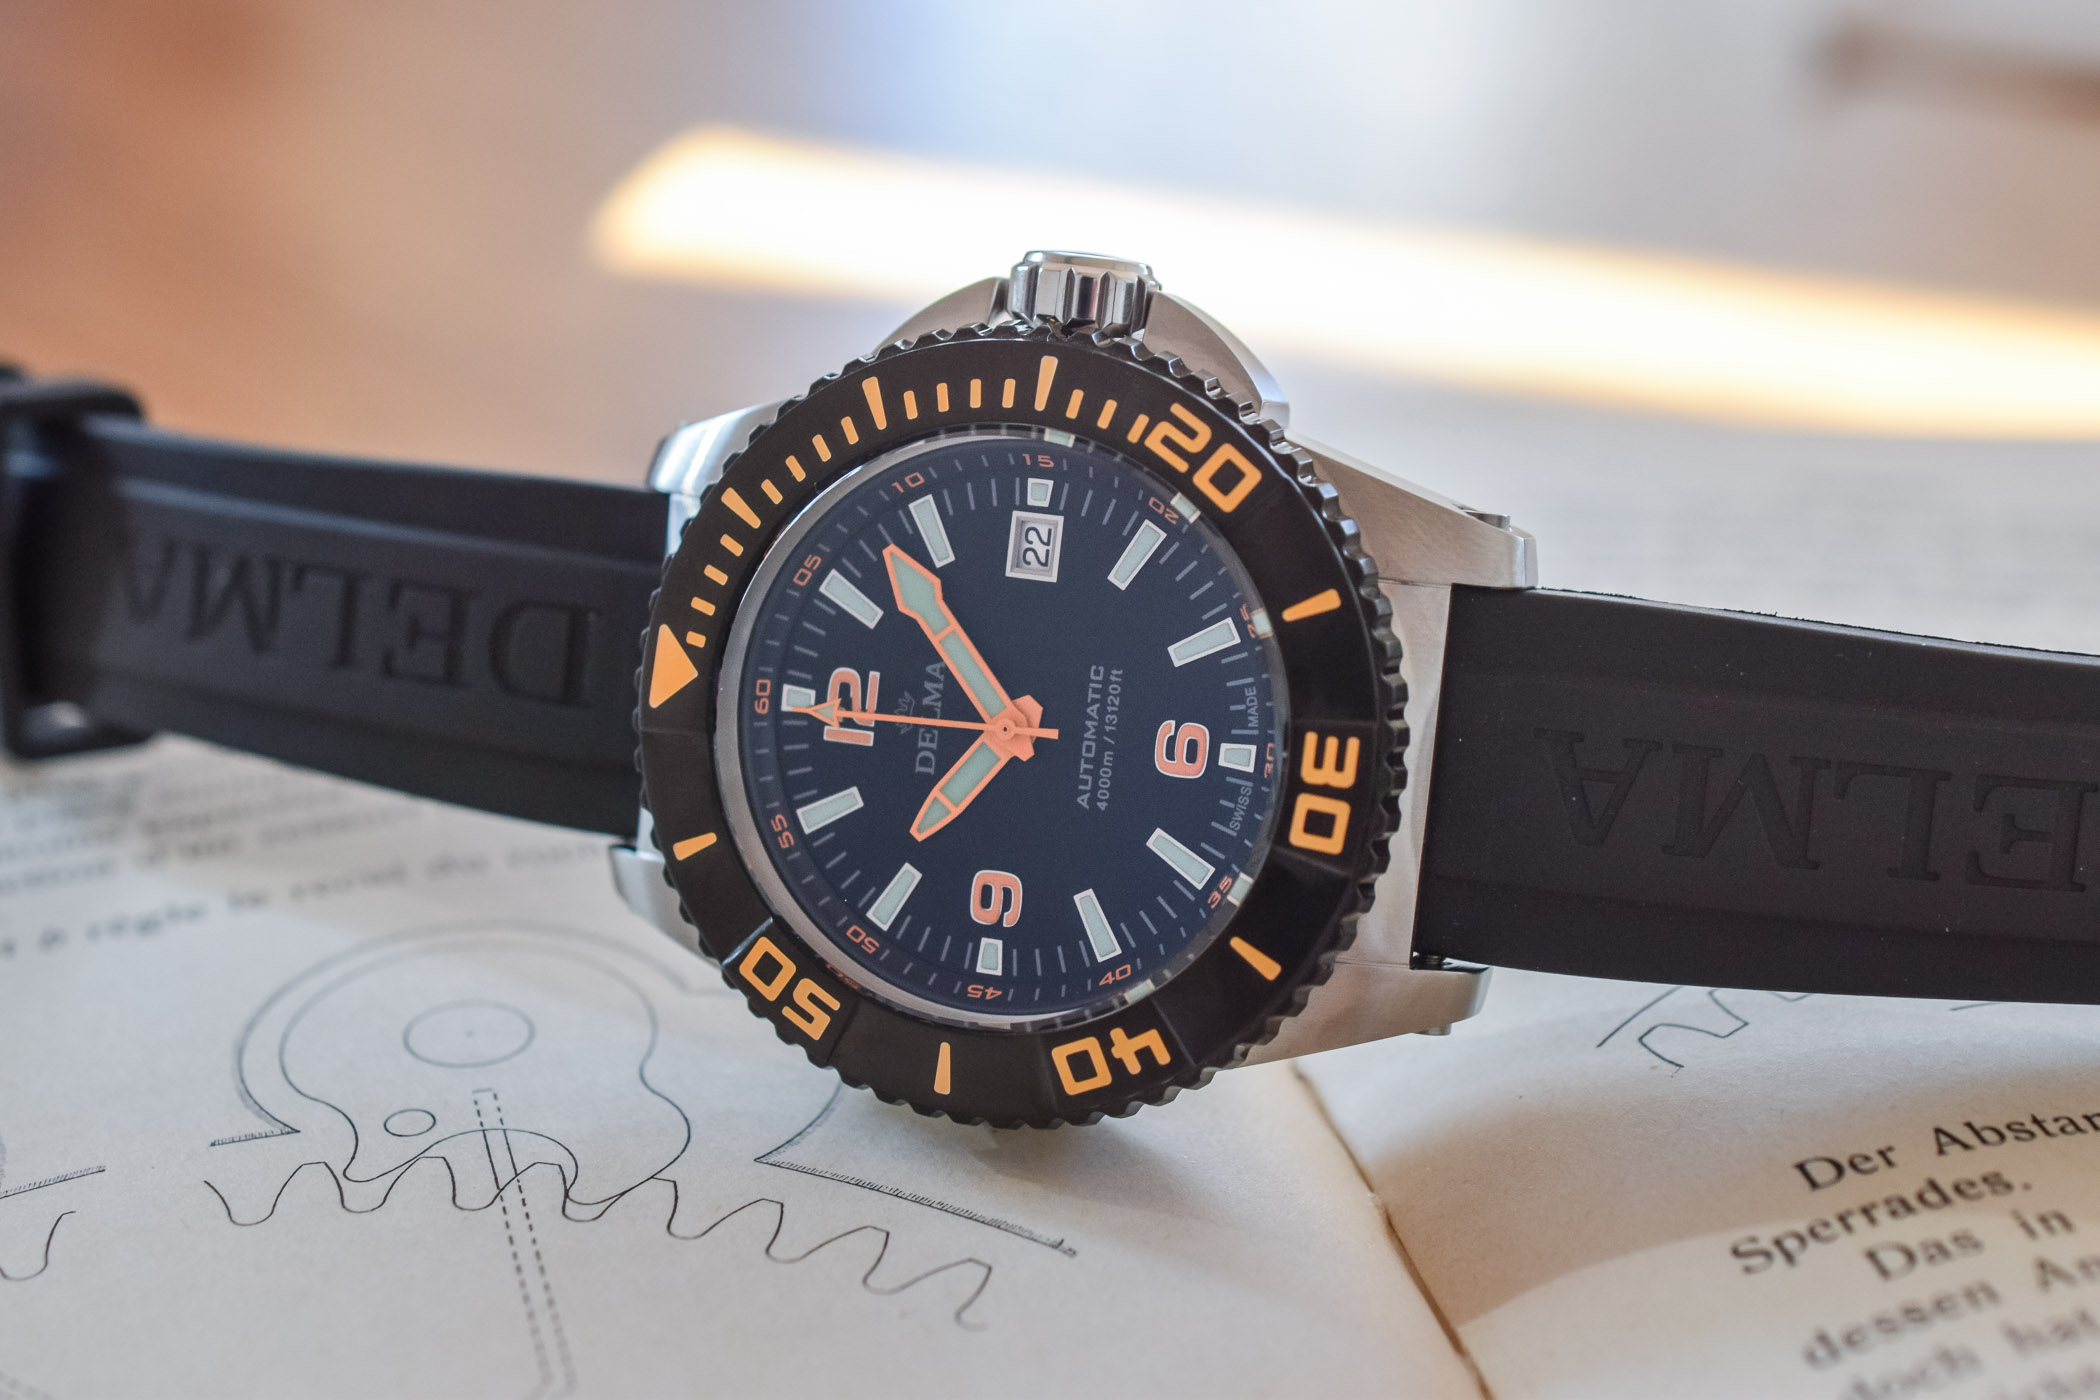 Delma Blue Shark III 4000m Deep Dive